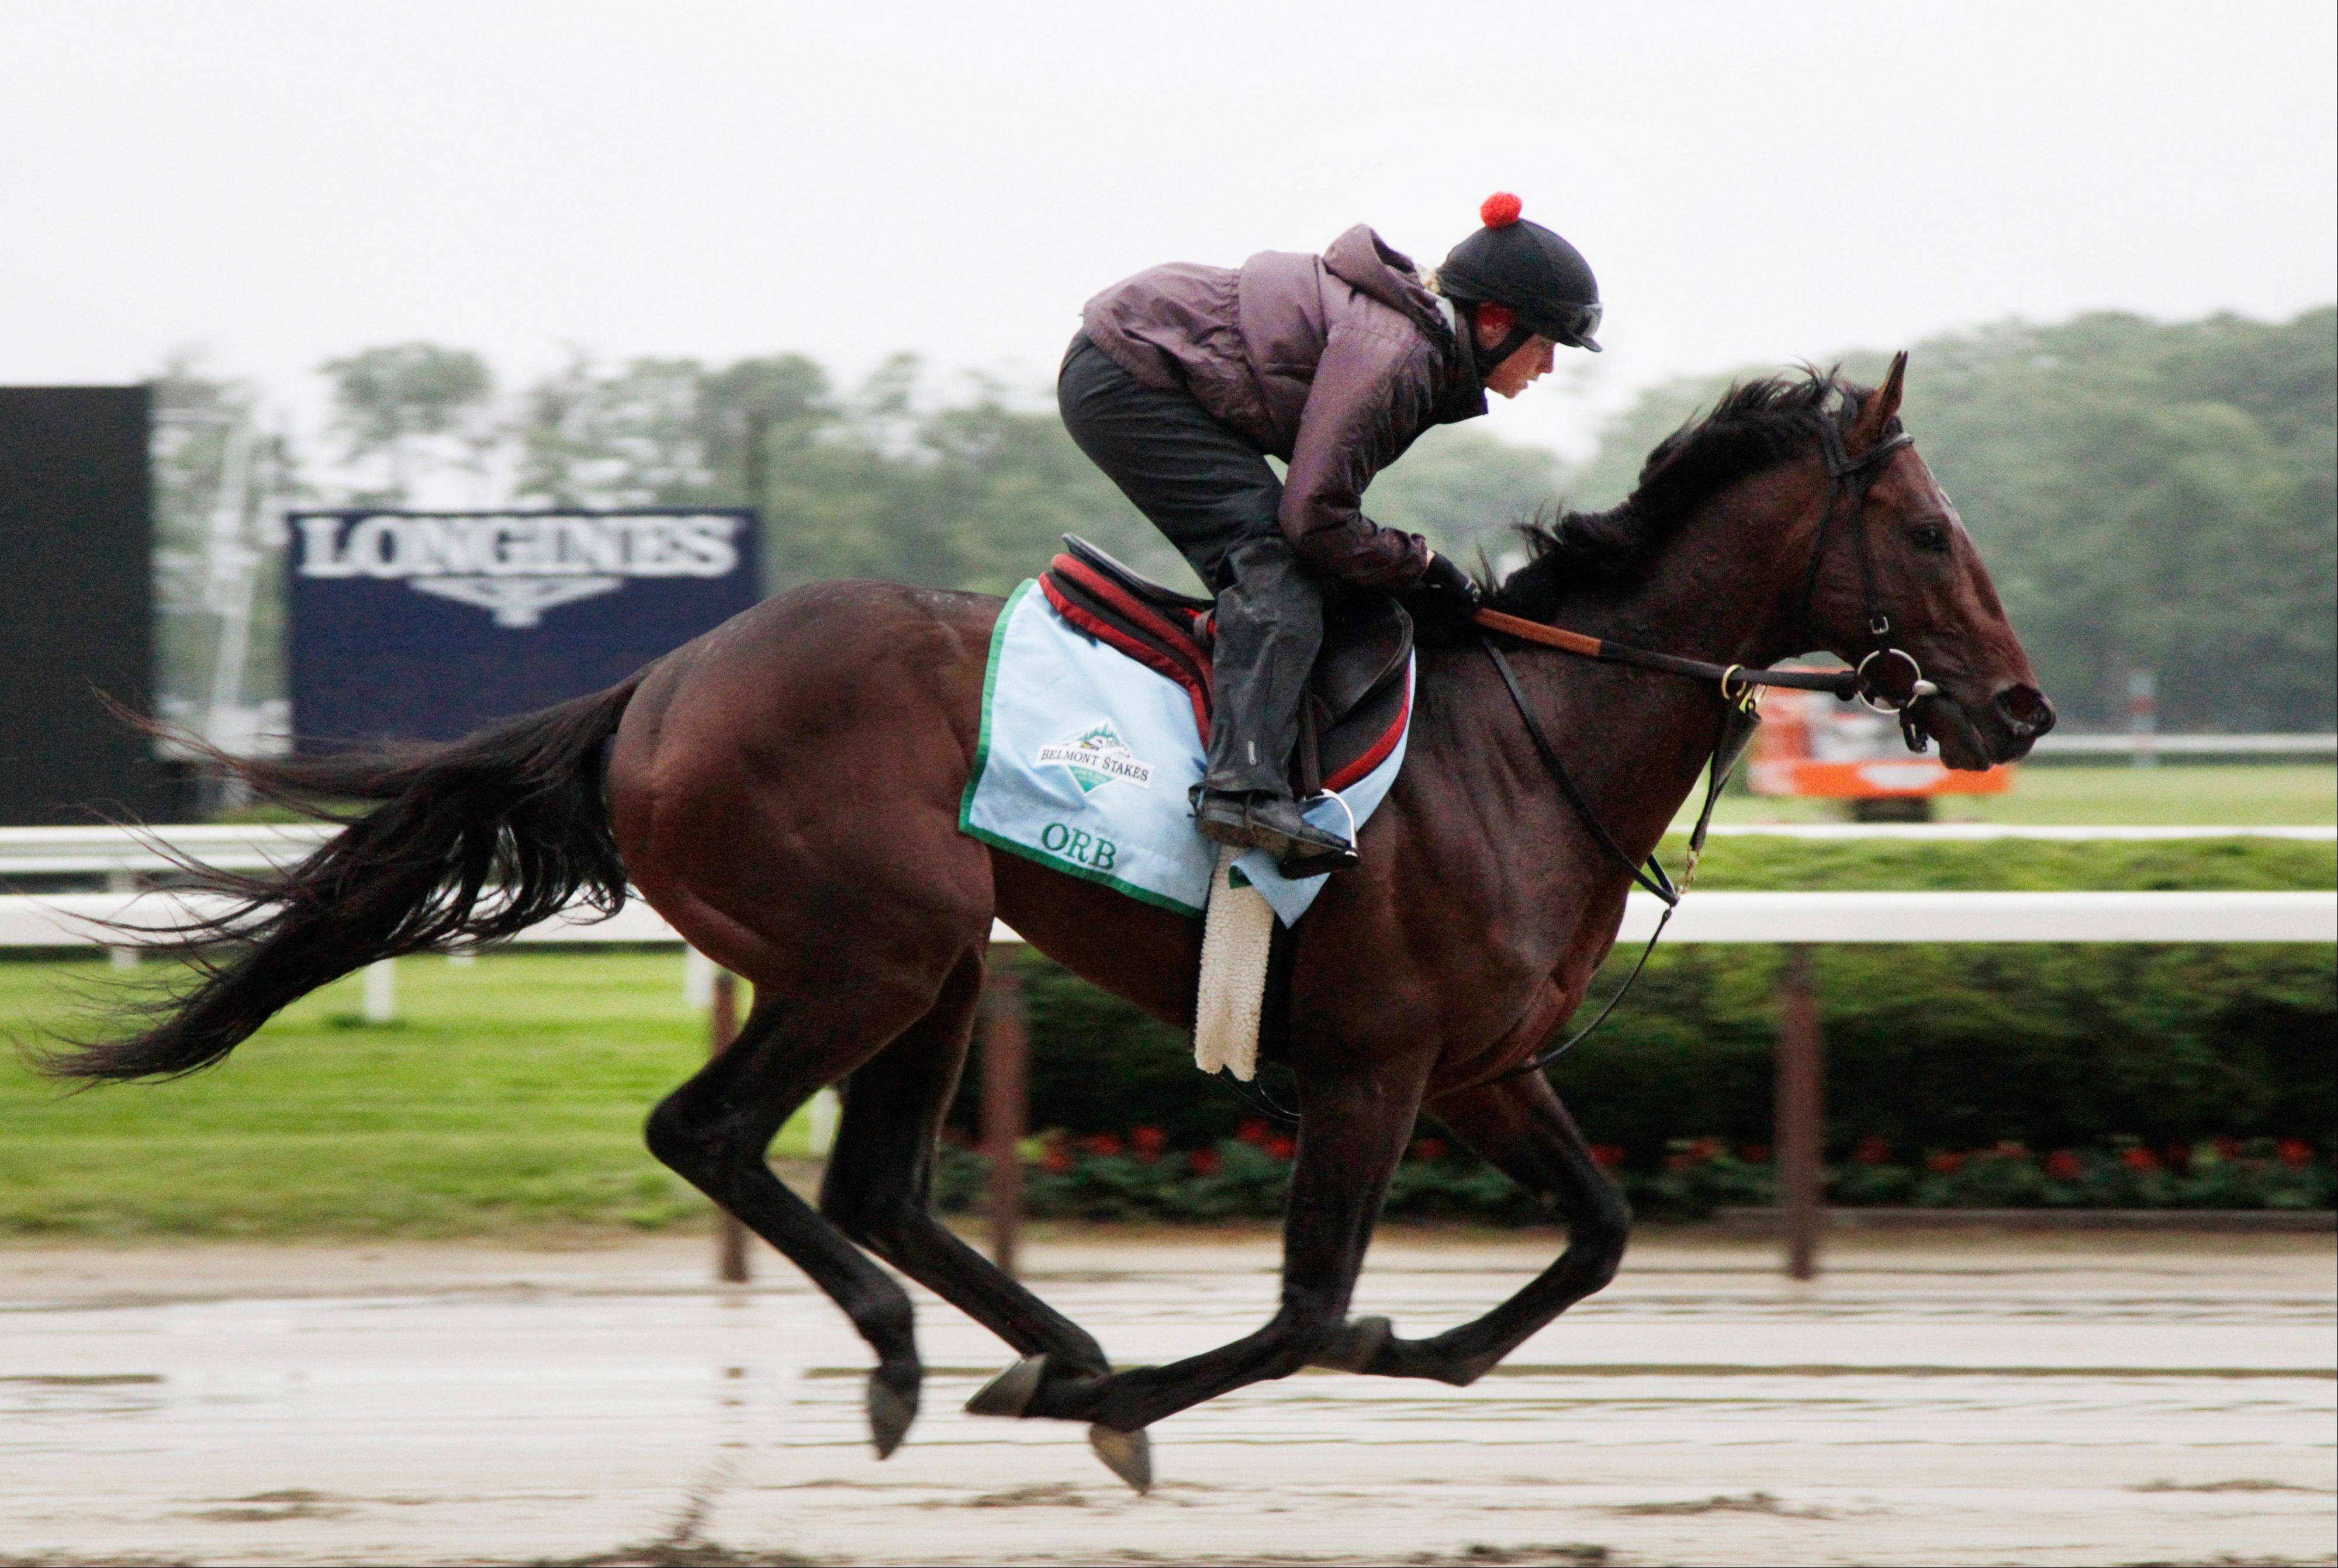 With a storm center on the East Coast, it could be a sloppy track for Orb and other contenders in Saturday's Belmont Stakes. Meanwhile, Arlington International hosts four stakes races Saturday at the local track.